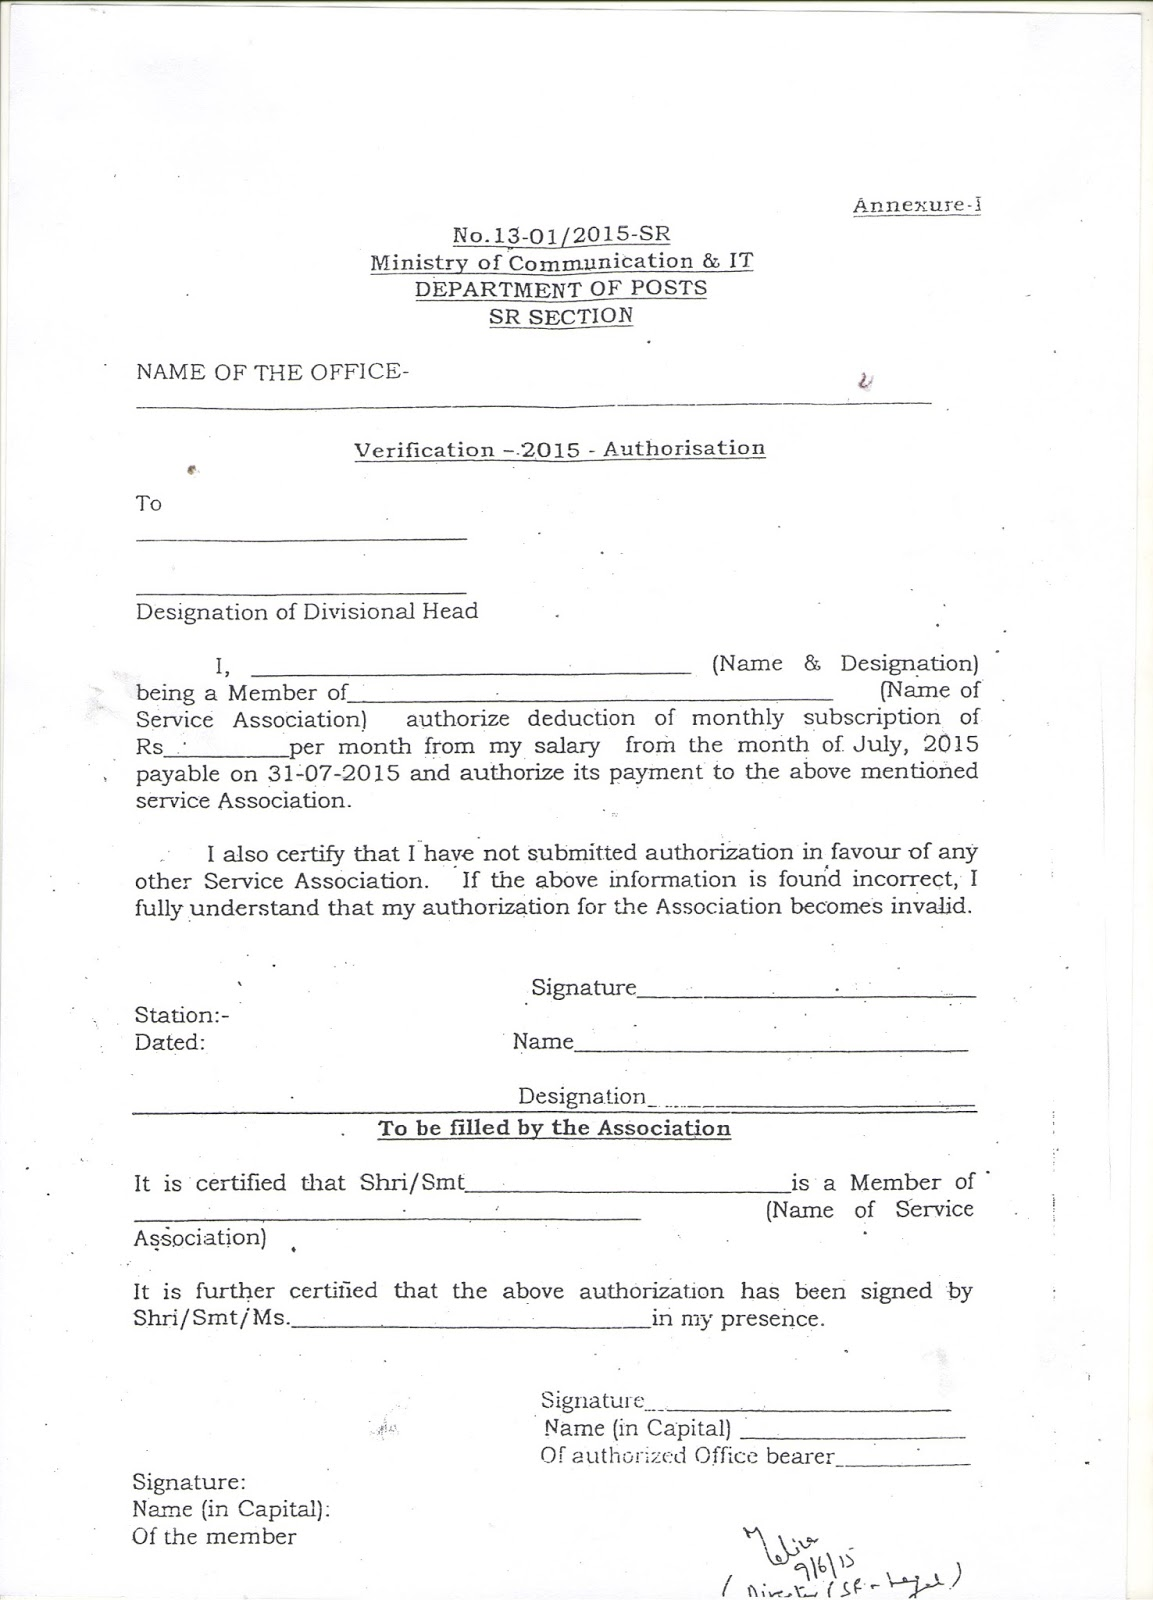 bharatiya postal employees federation regular departmental employees verification form